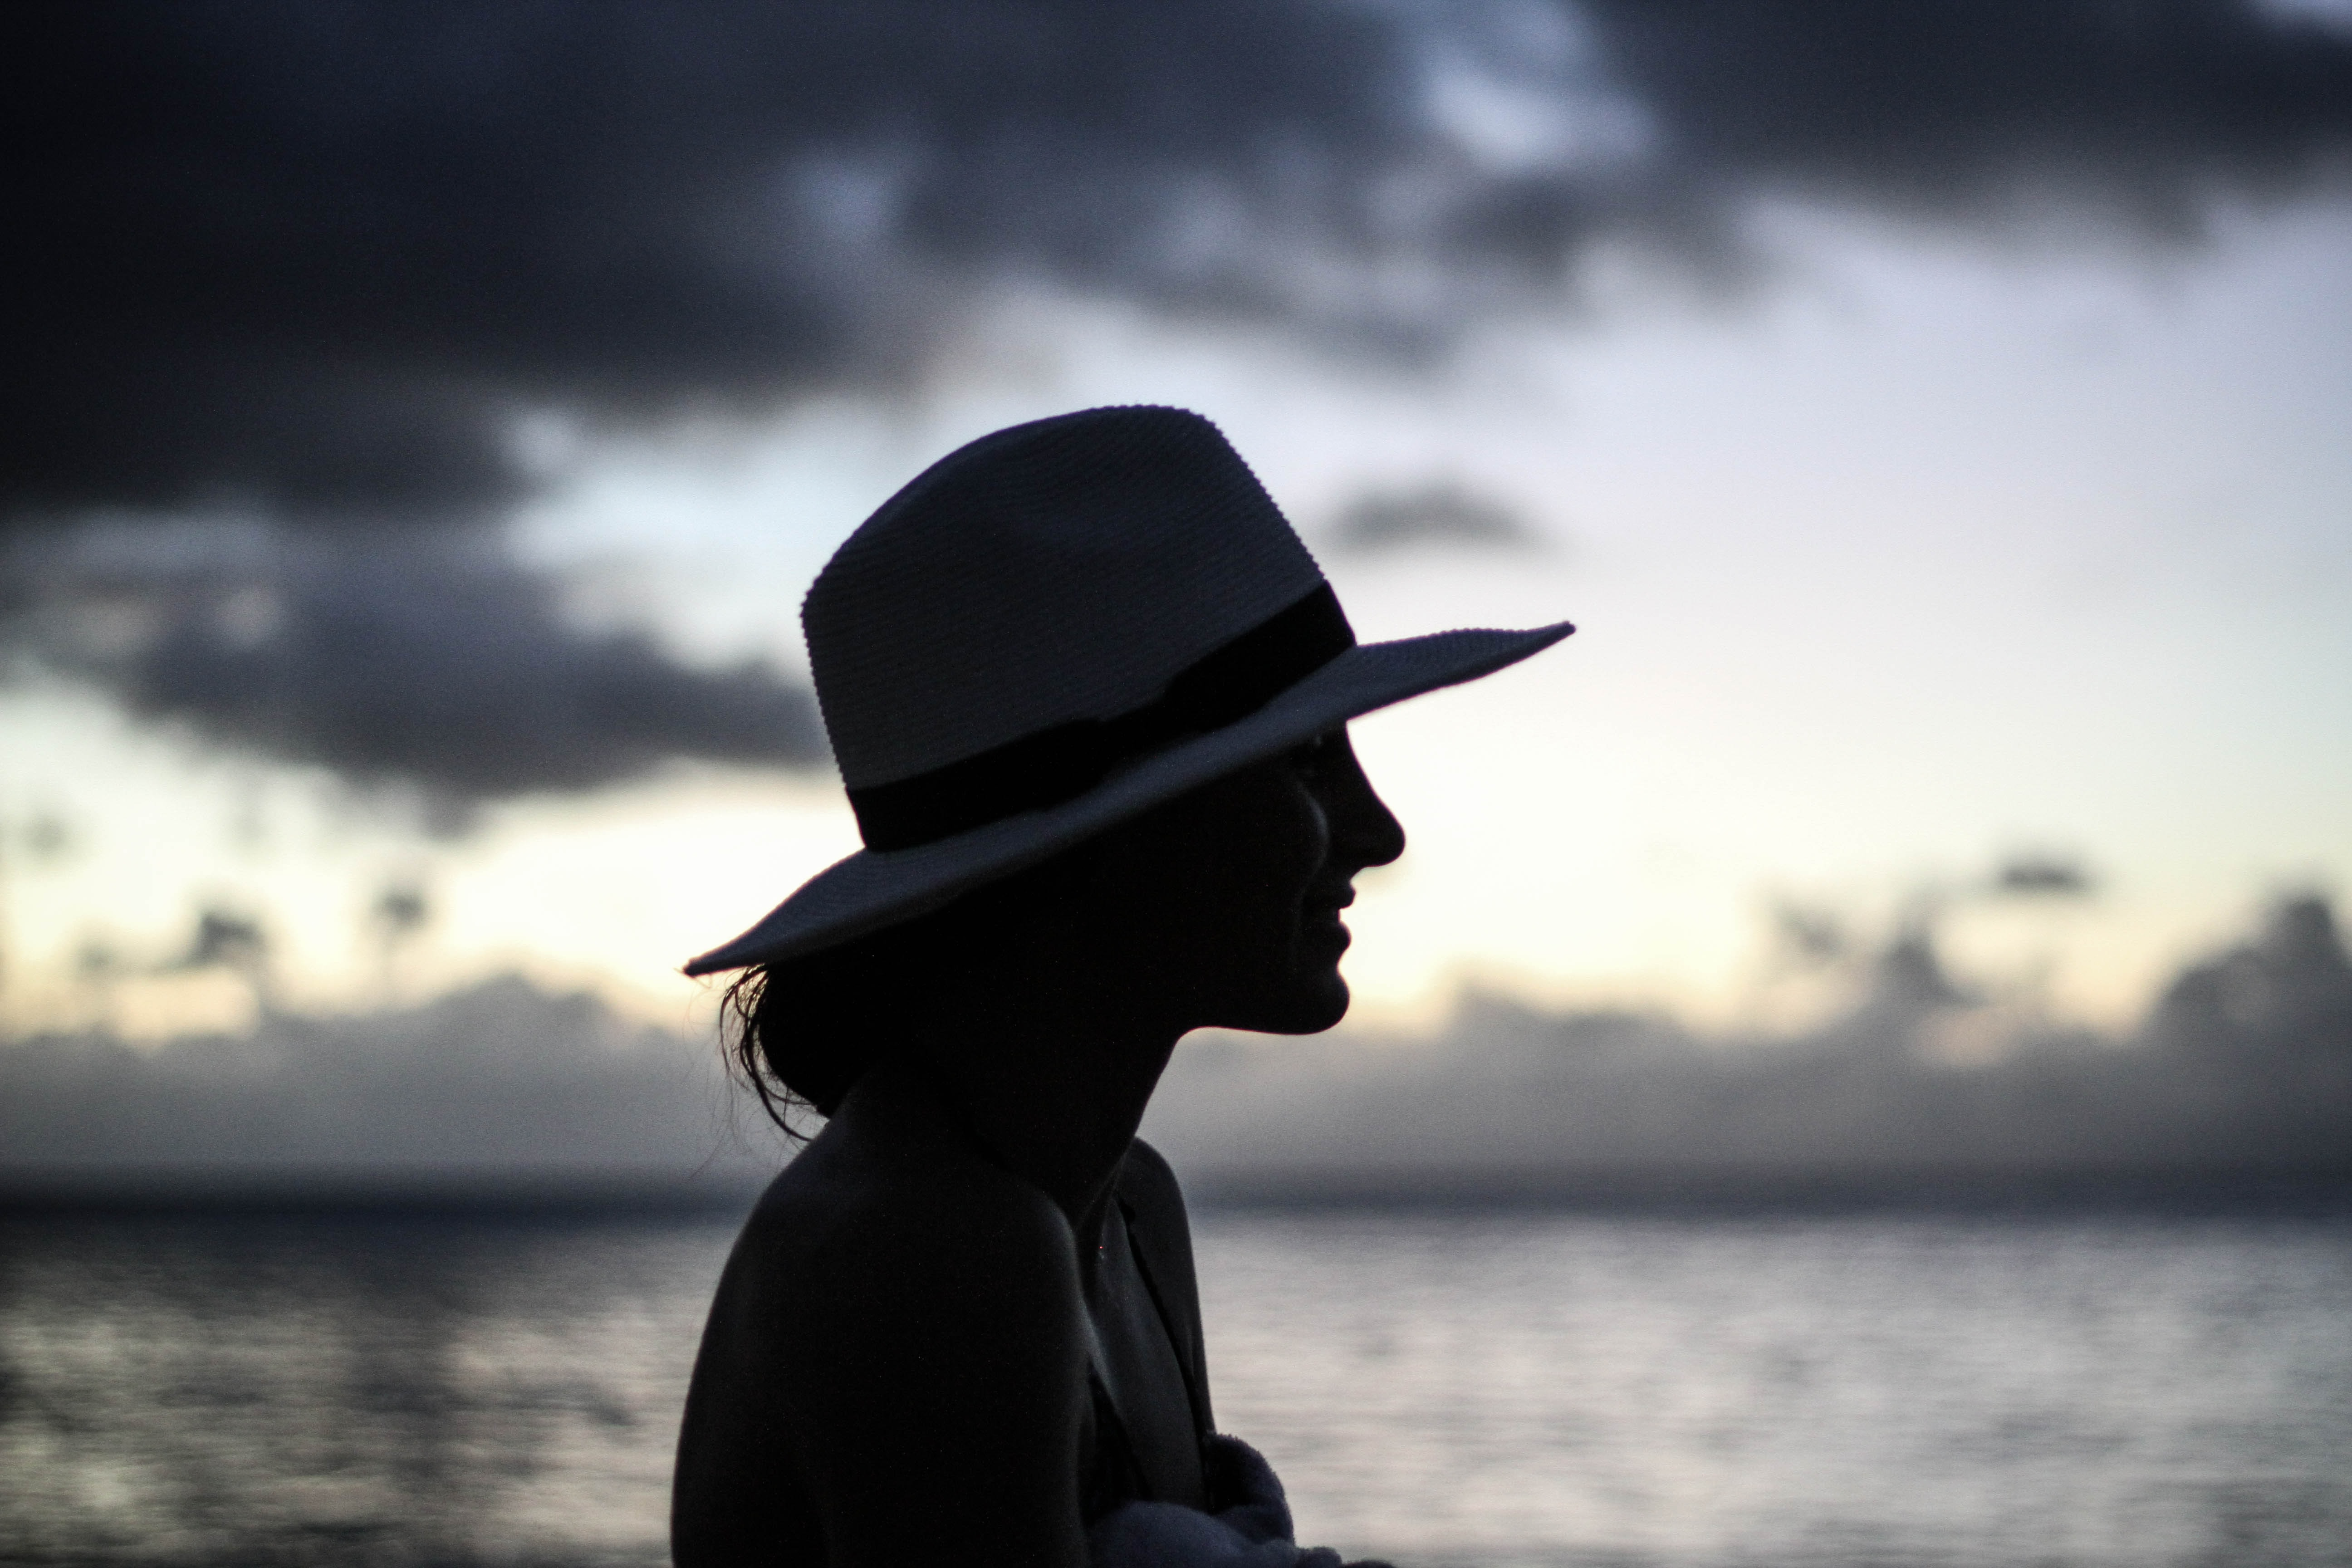 The silhouette of a woman wearing a hat during sunset at Waimea Bay